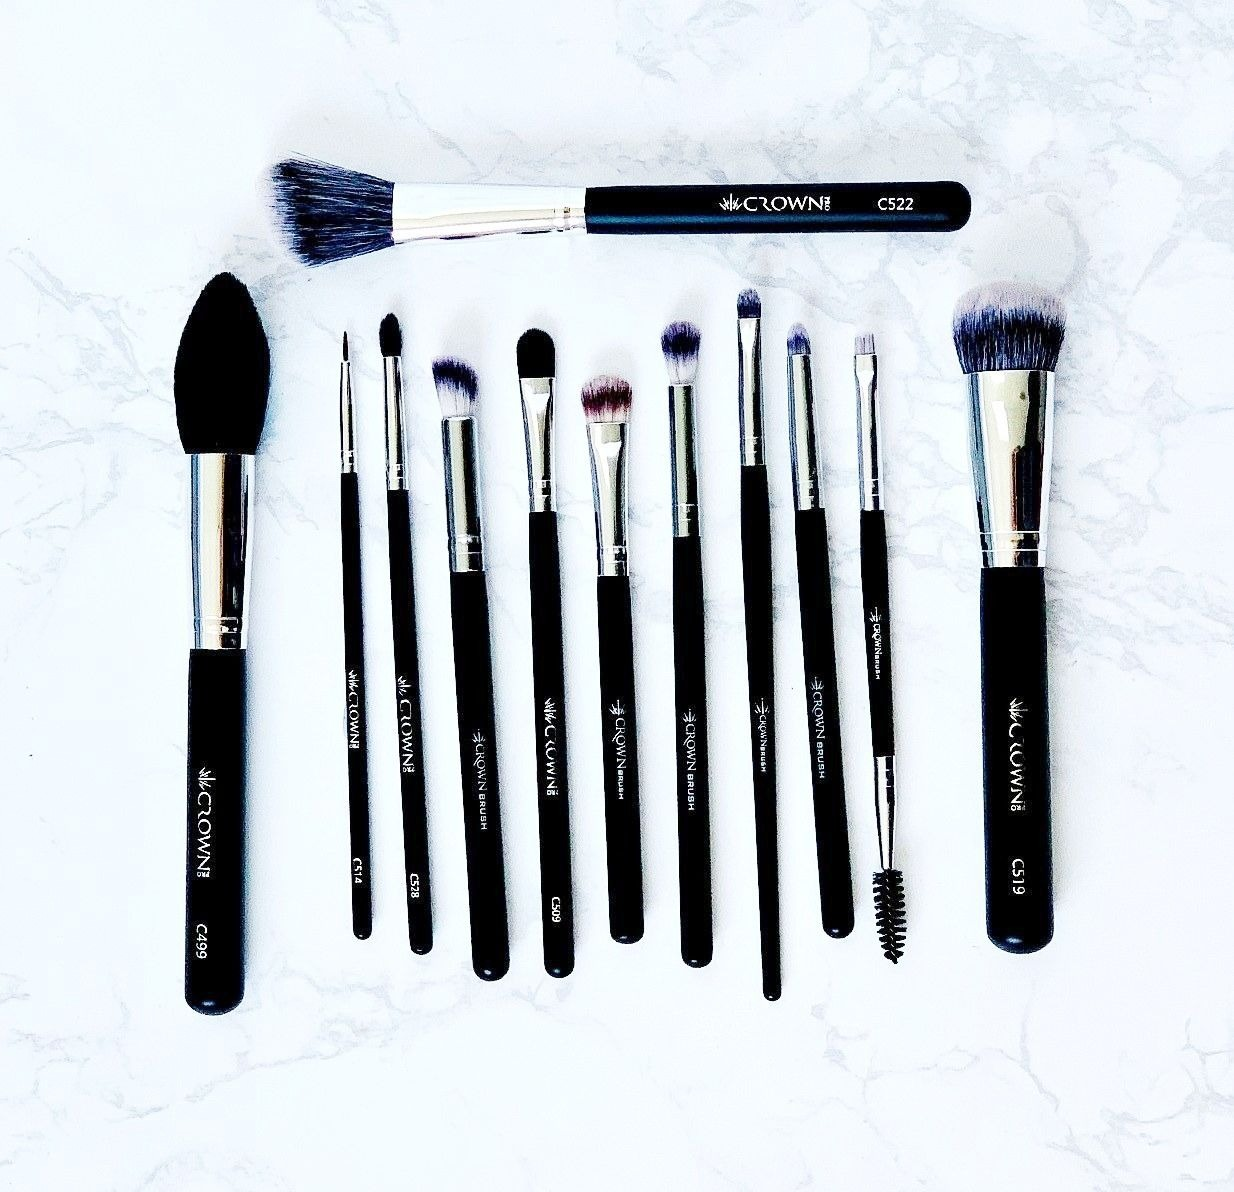 Crown Brushes Review,